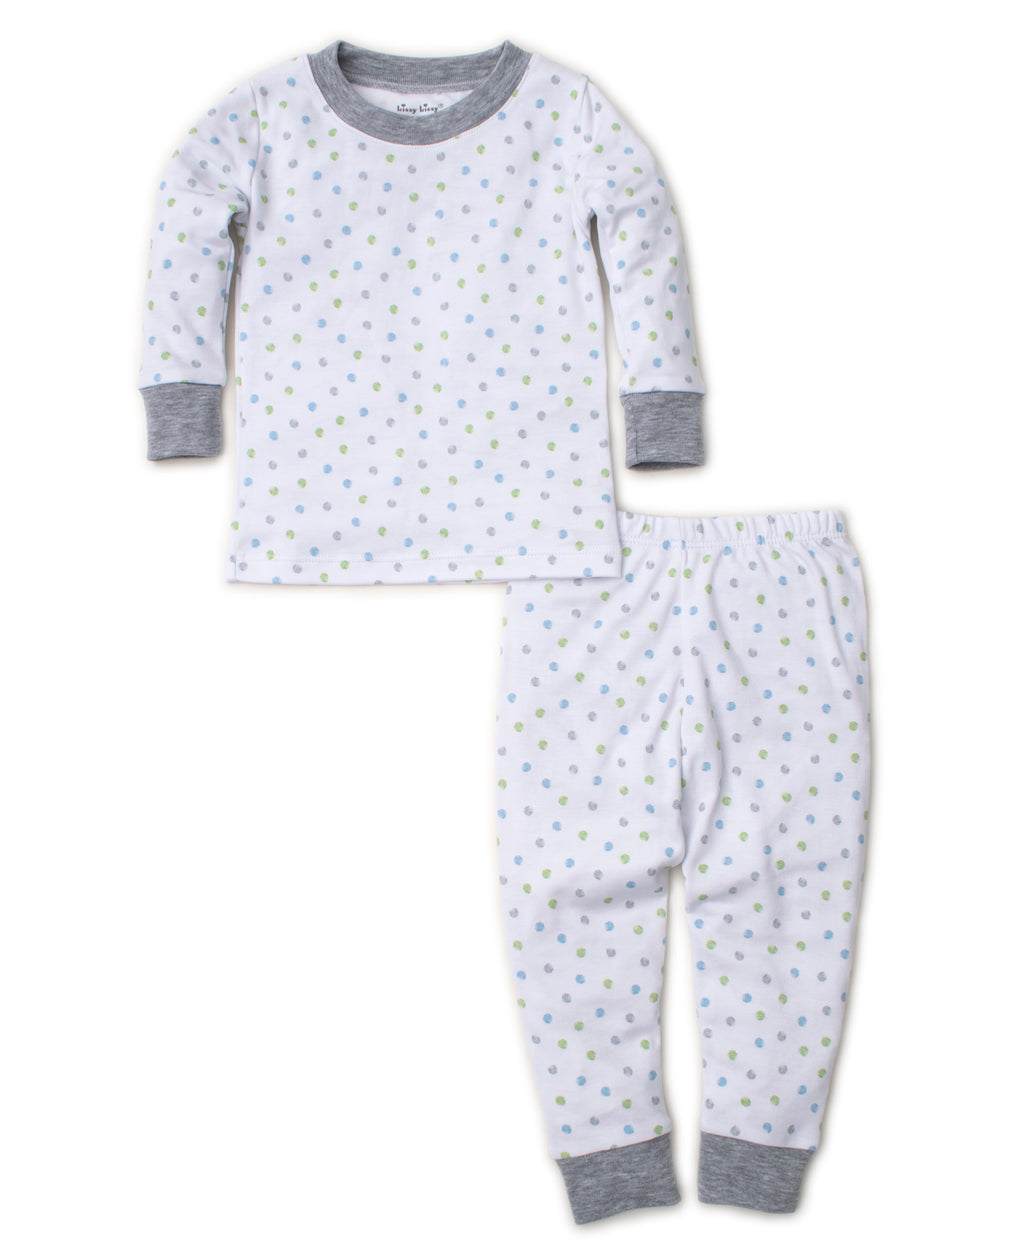 Dapple Dots Gray Toddler Pajama Set |Kissy Kissy